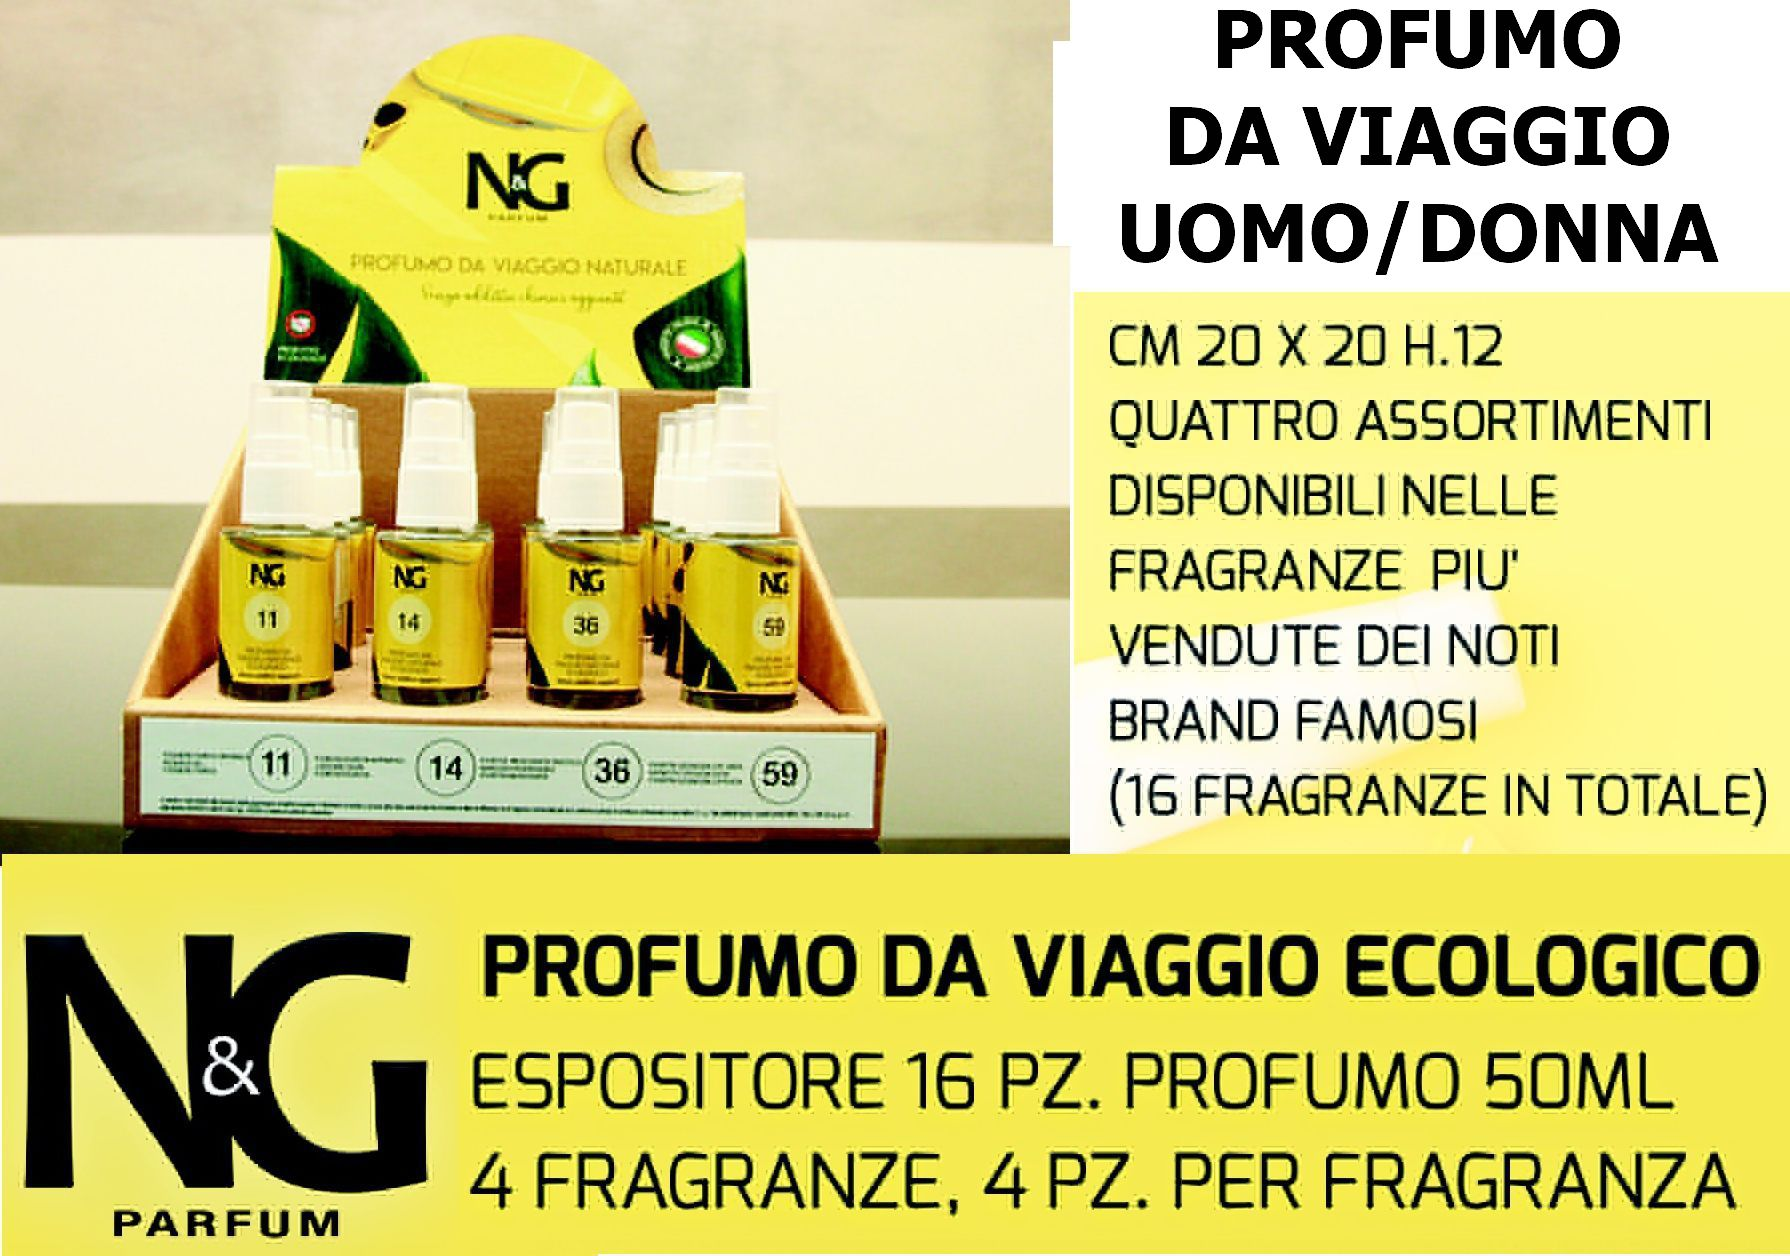 PROFUMO NG 50ml EXPO 16pz - DONNA / UOMO ASS. ECOLOGICO